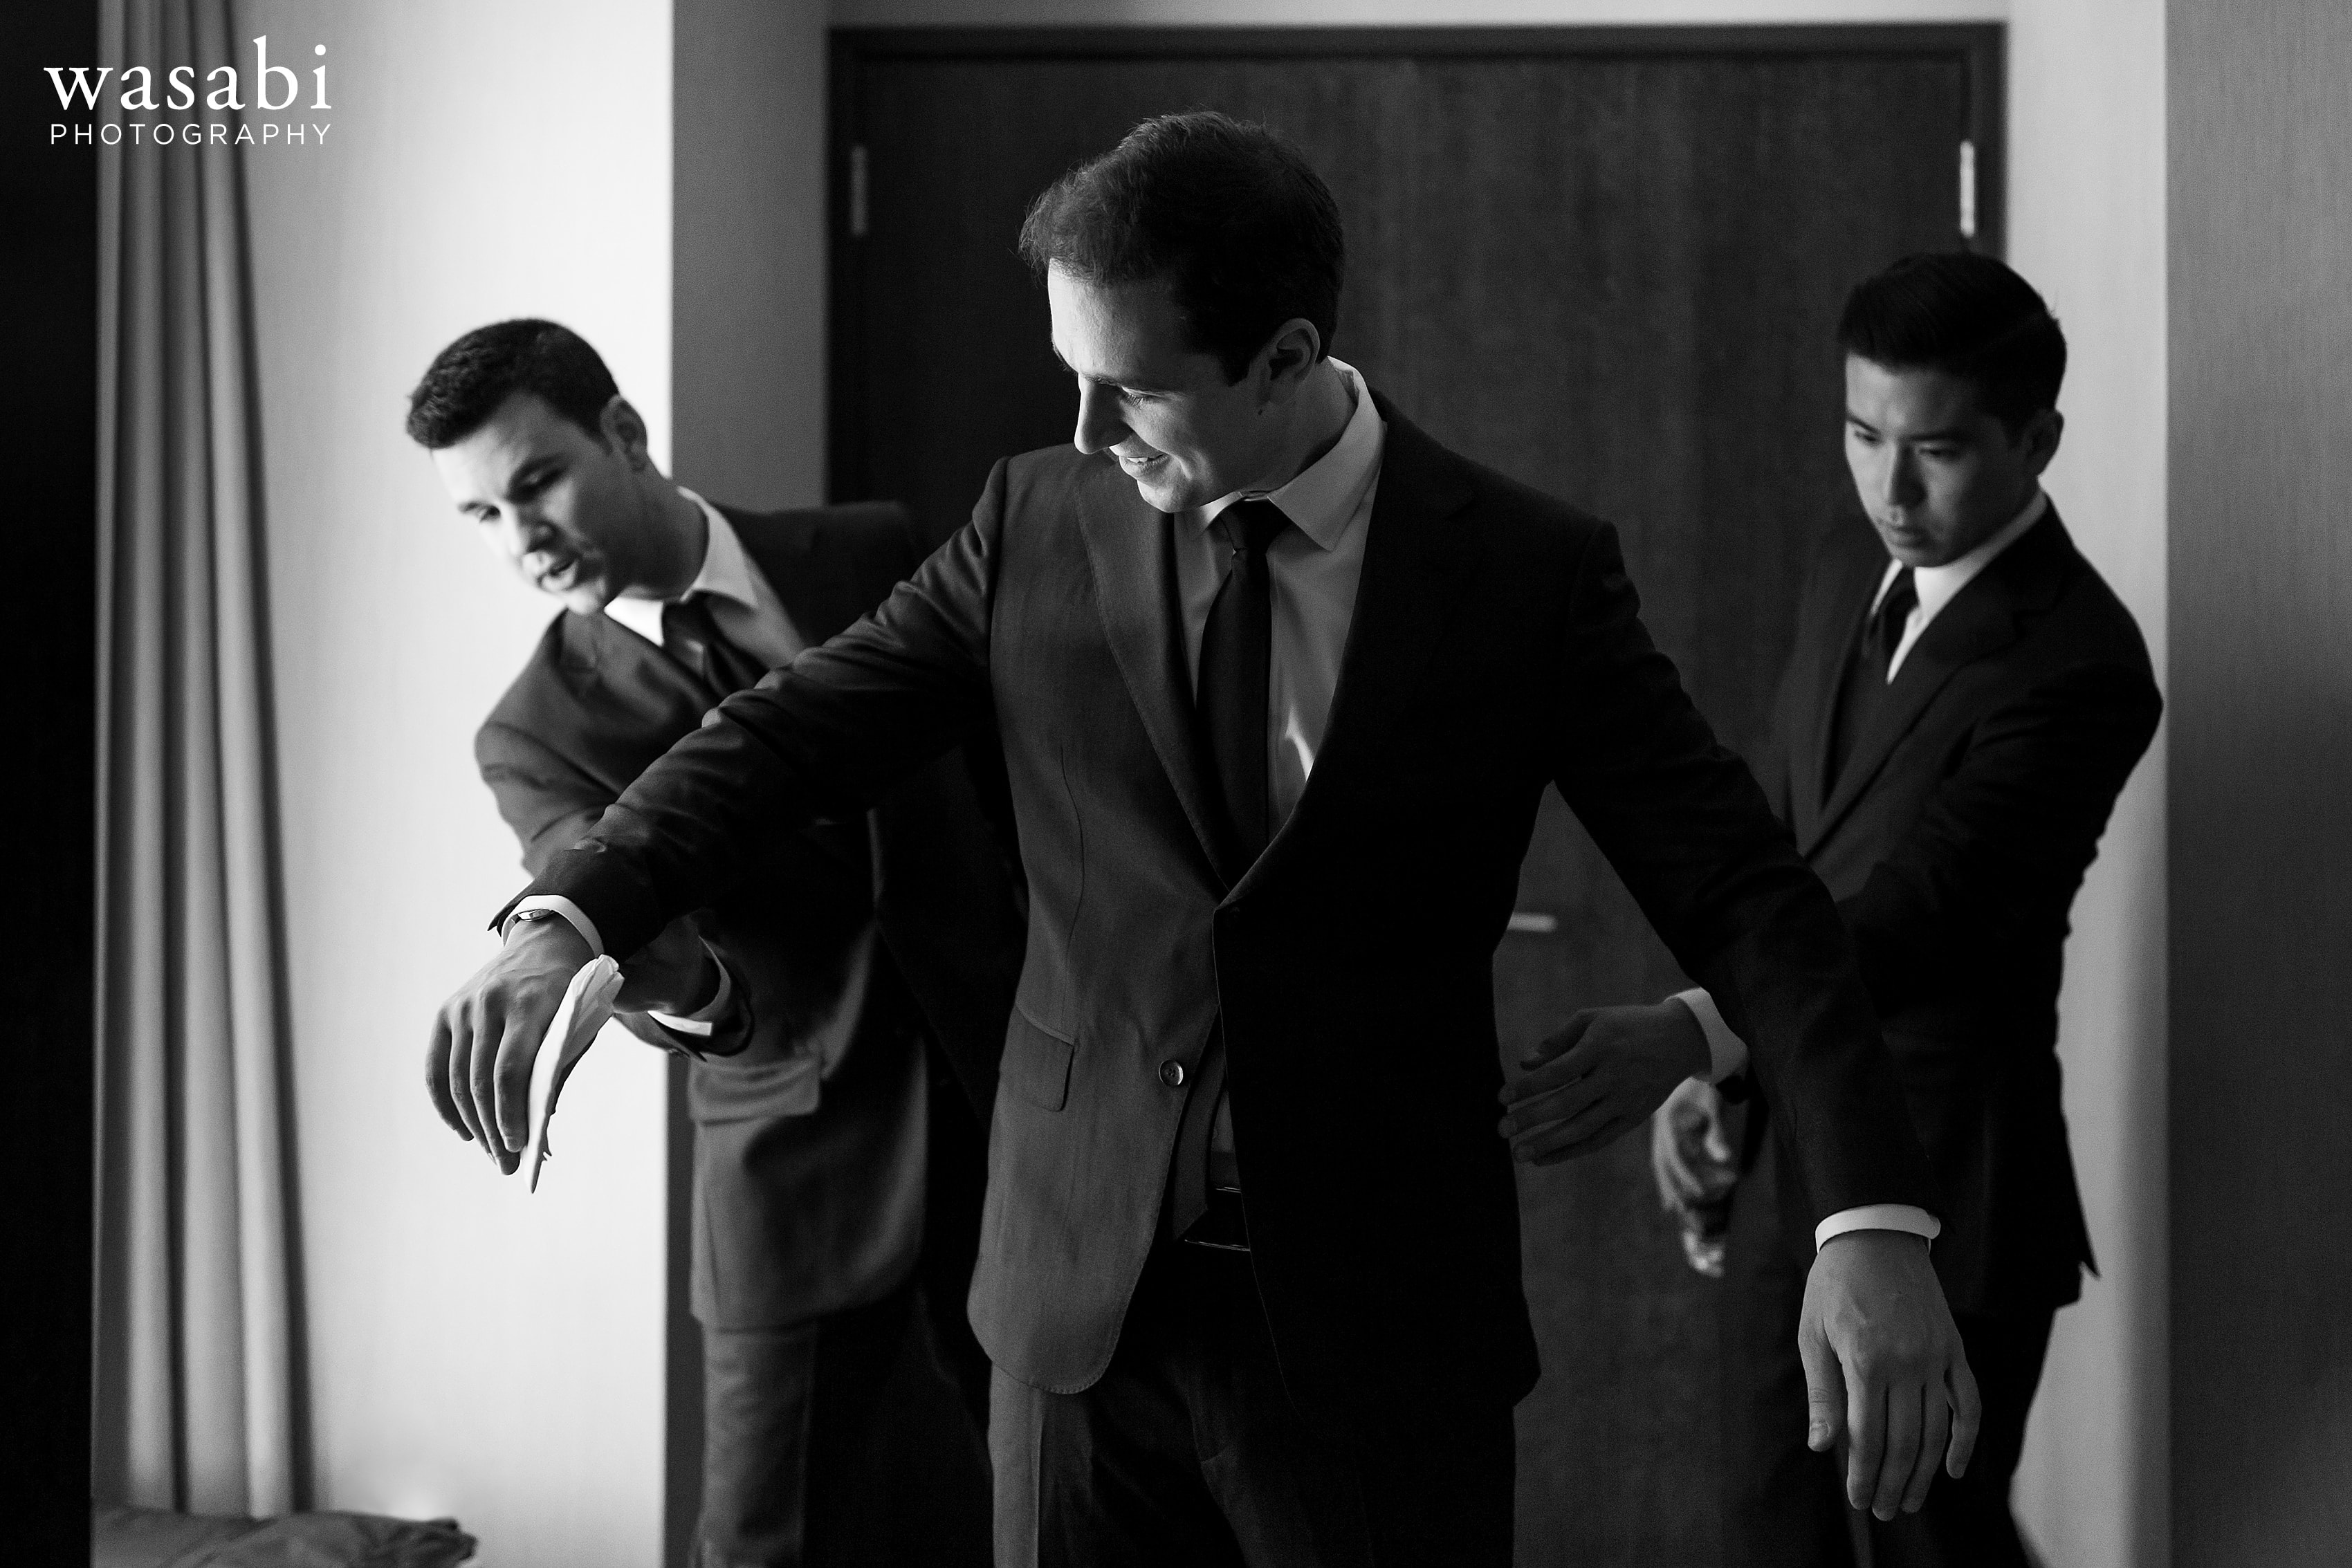 Justin-smiles-as-his-groomsmen-adjust-his-suit-at-Hotel-Palomar-while-getting-ready-for-his-wedding-04